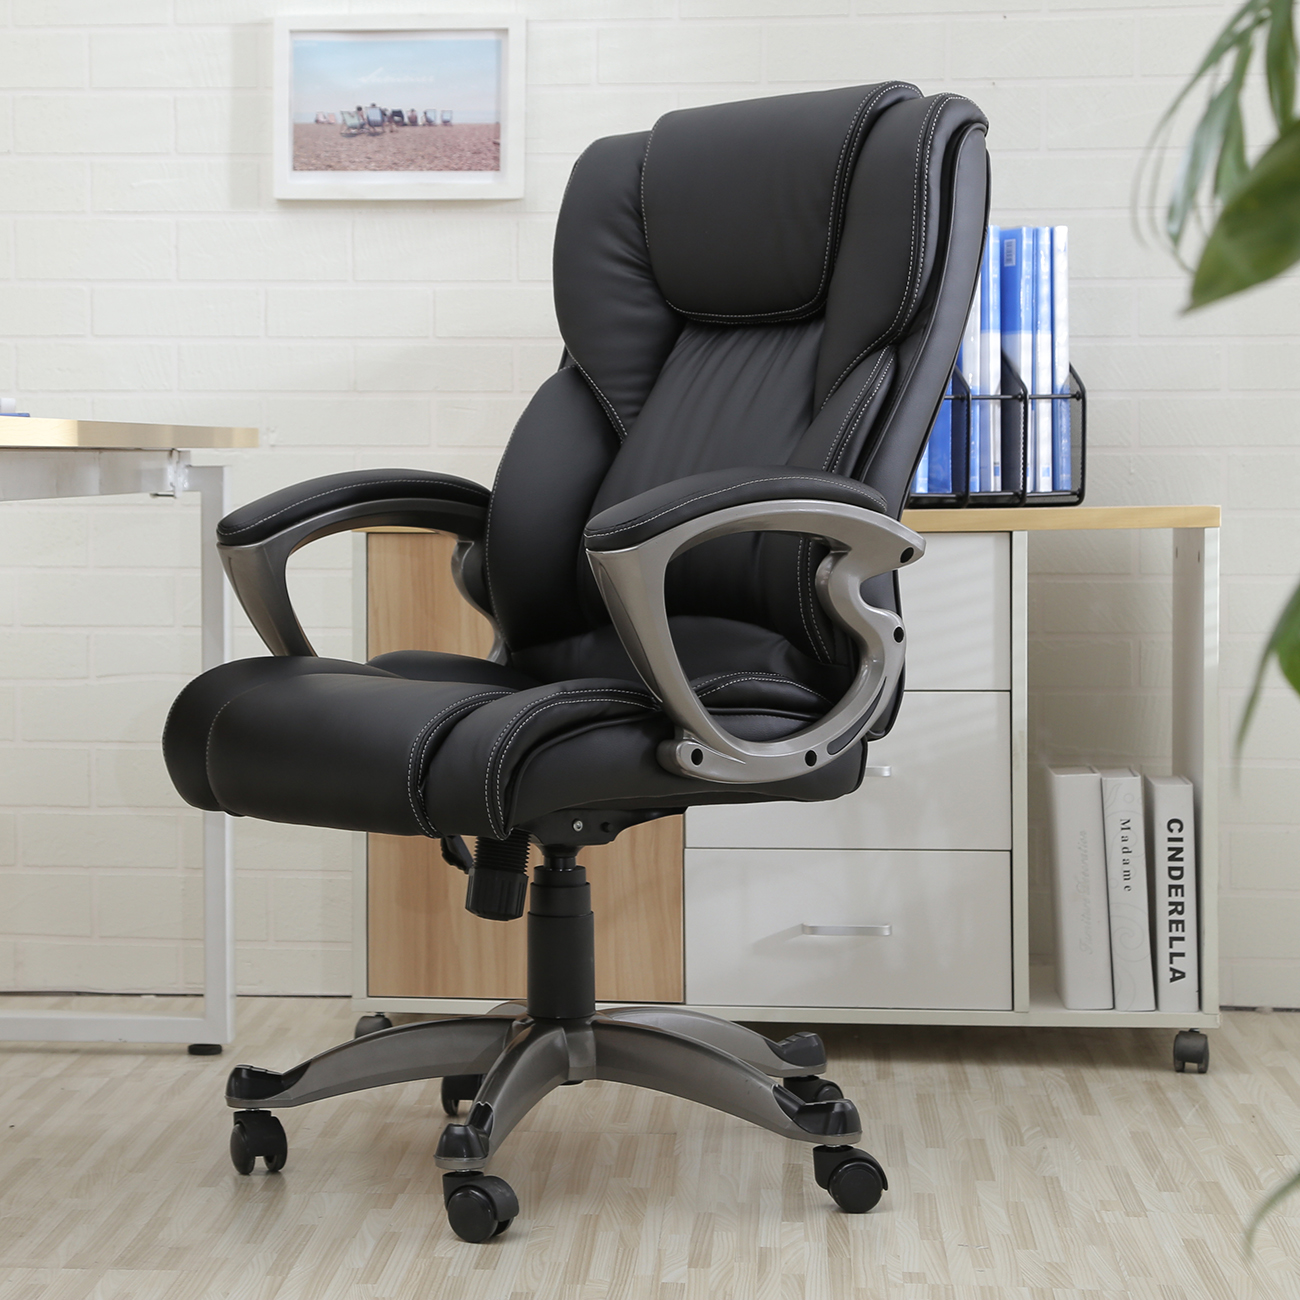 Executive fice Chair High Back Task Ergonomic puter